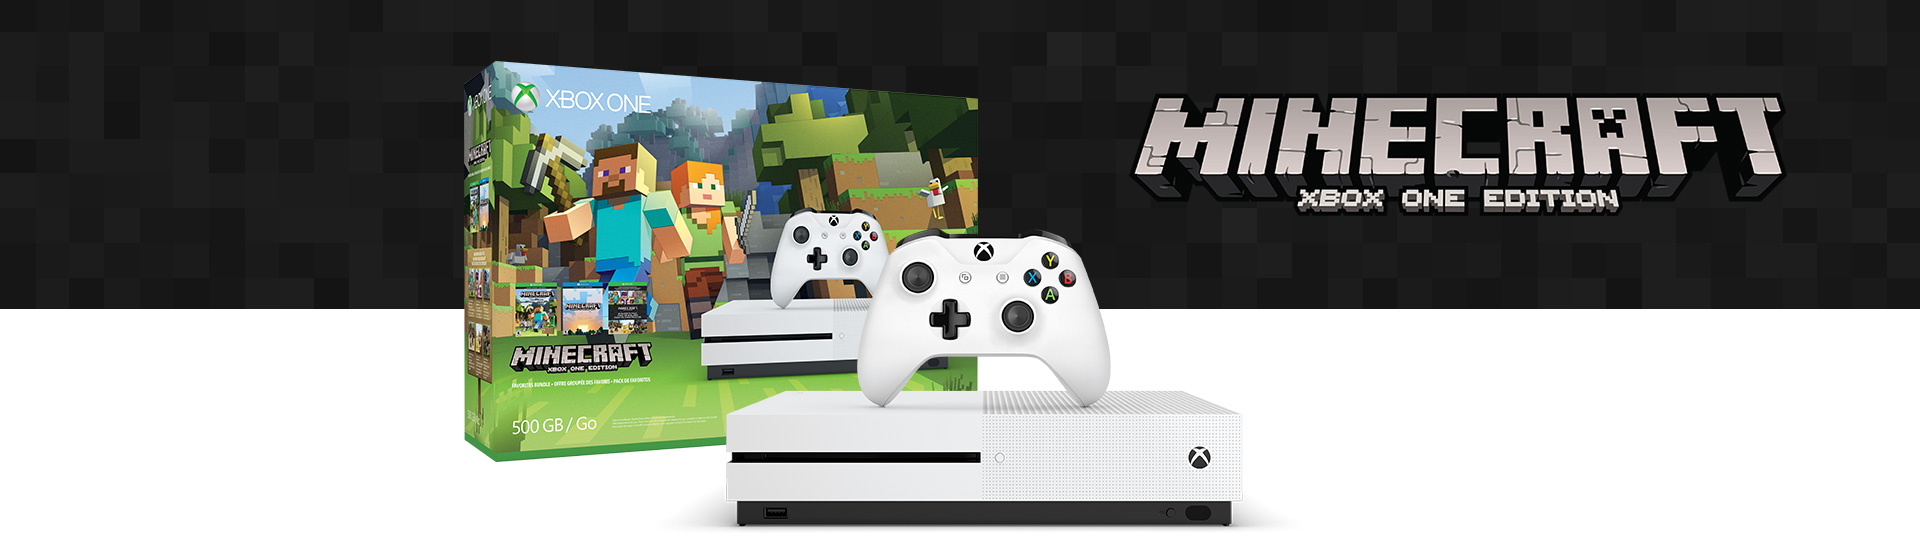 Xbox One S Minecraft Favorite Bundle